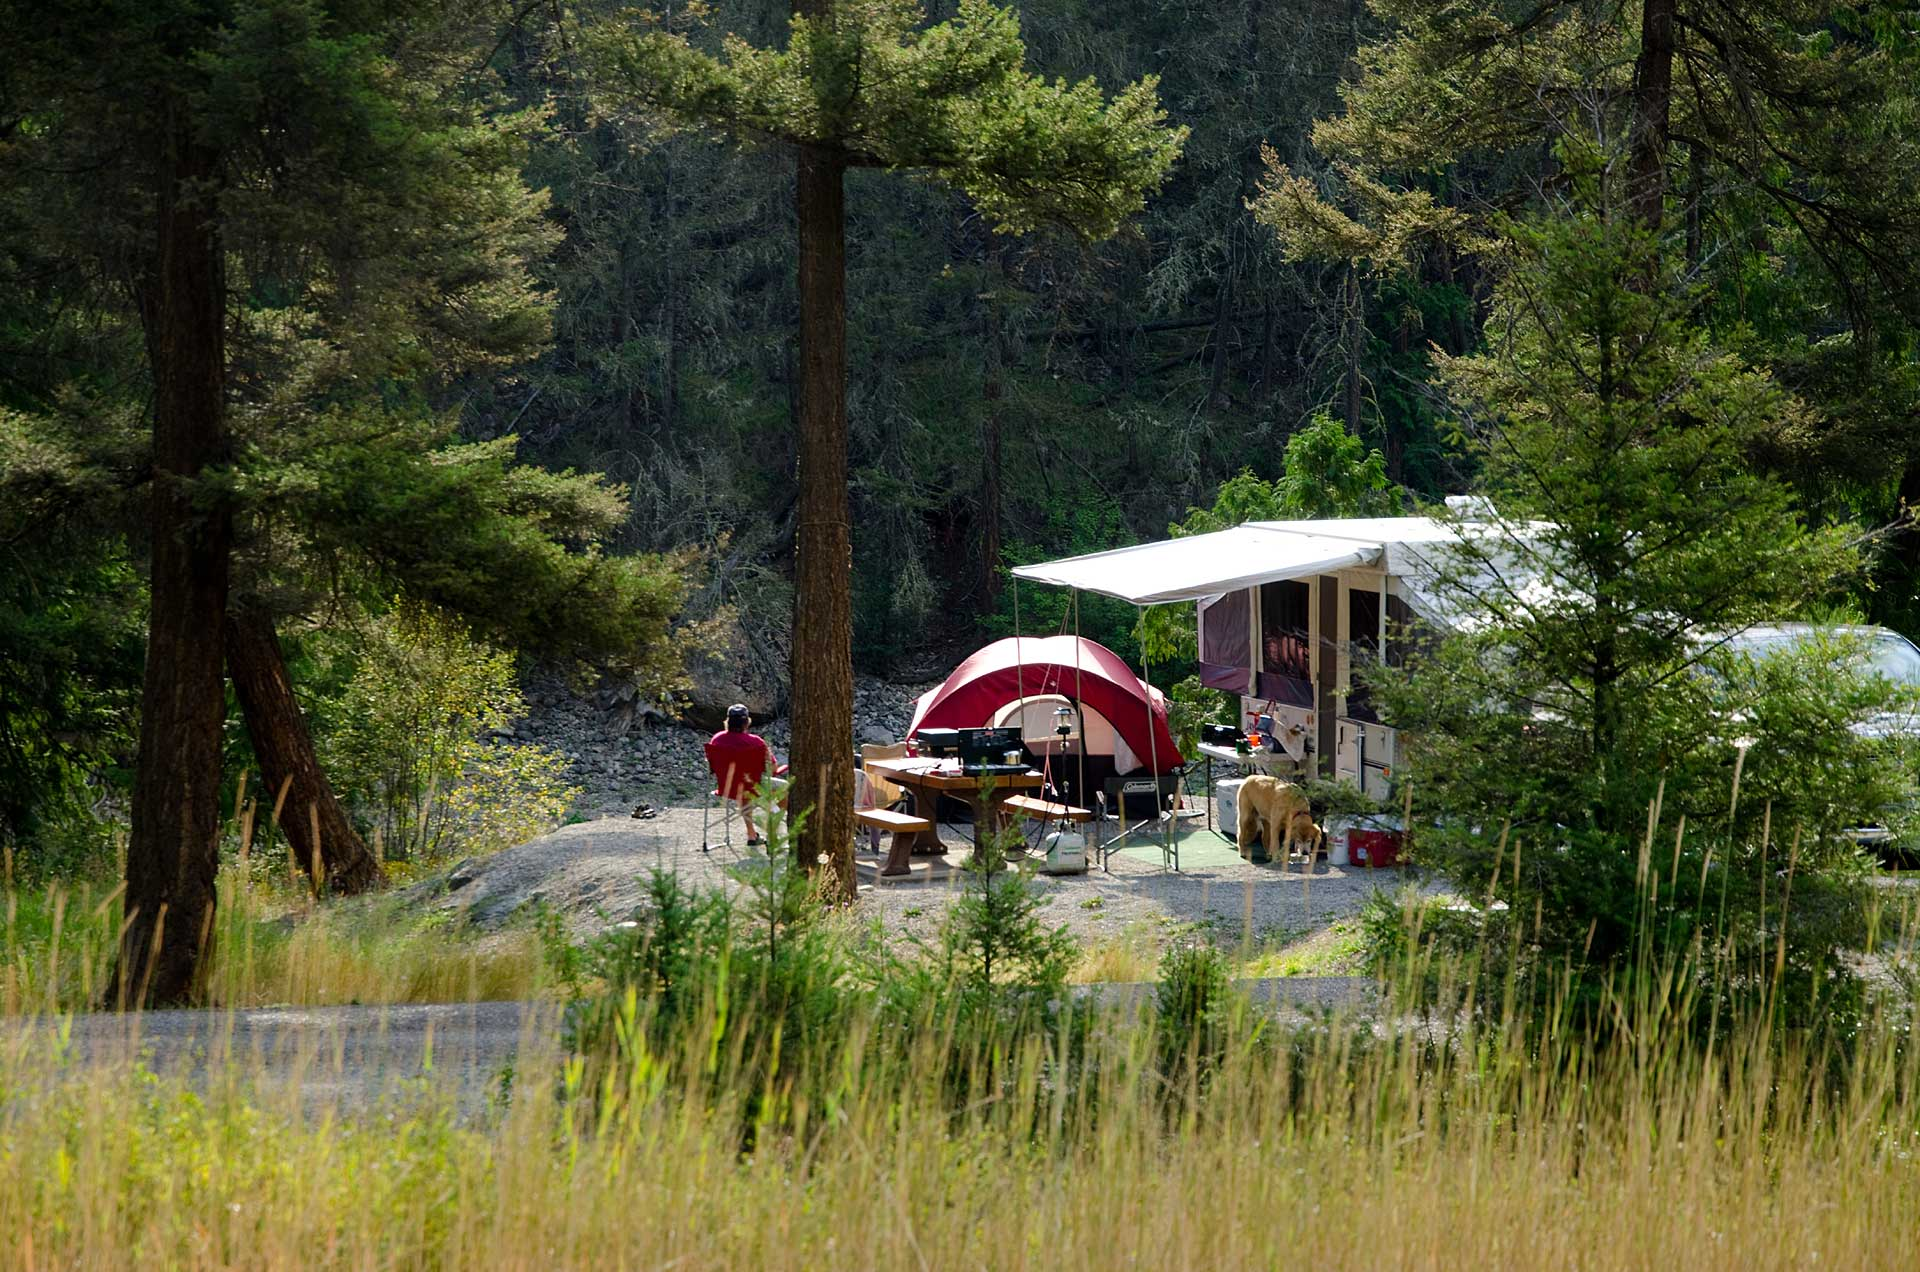 Camping And Rving Where To Stay Similkameen Valley